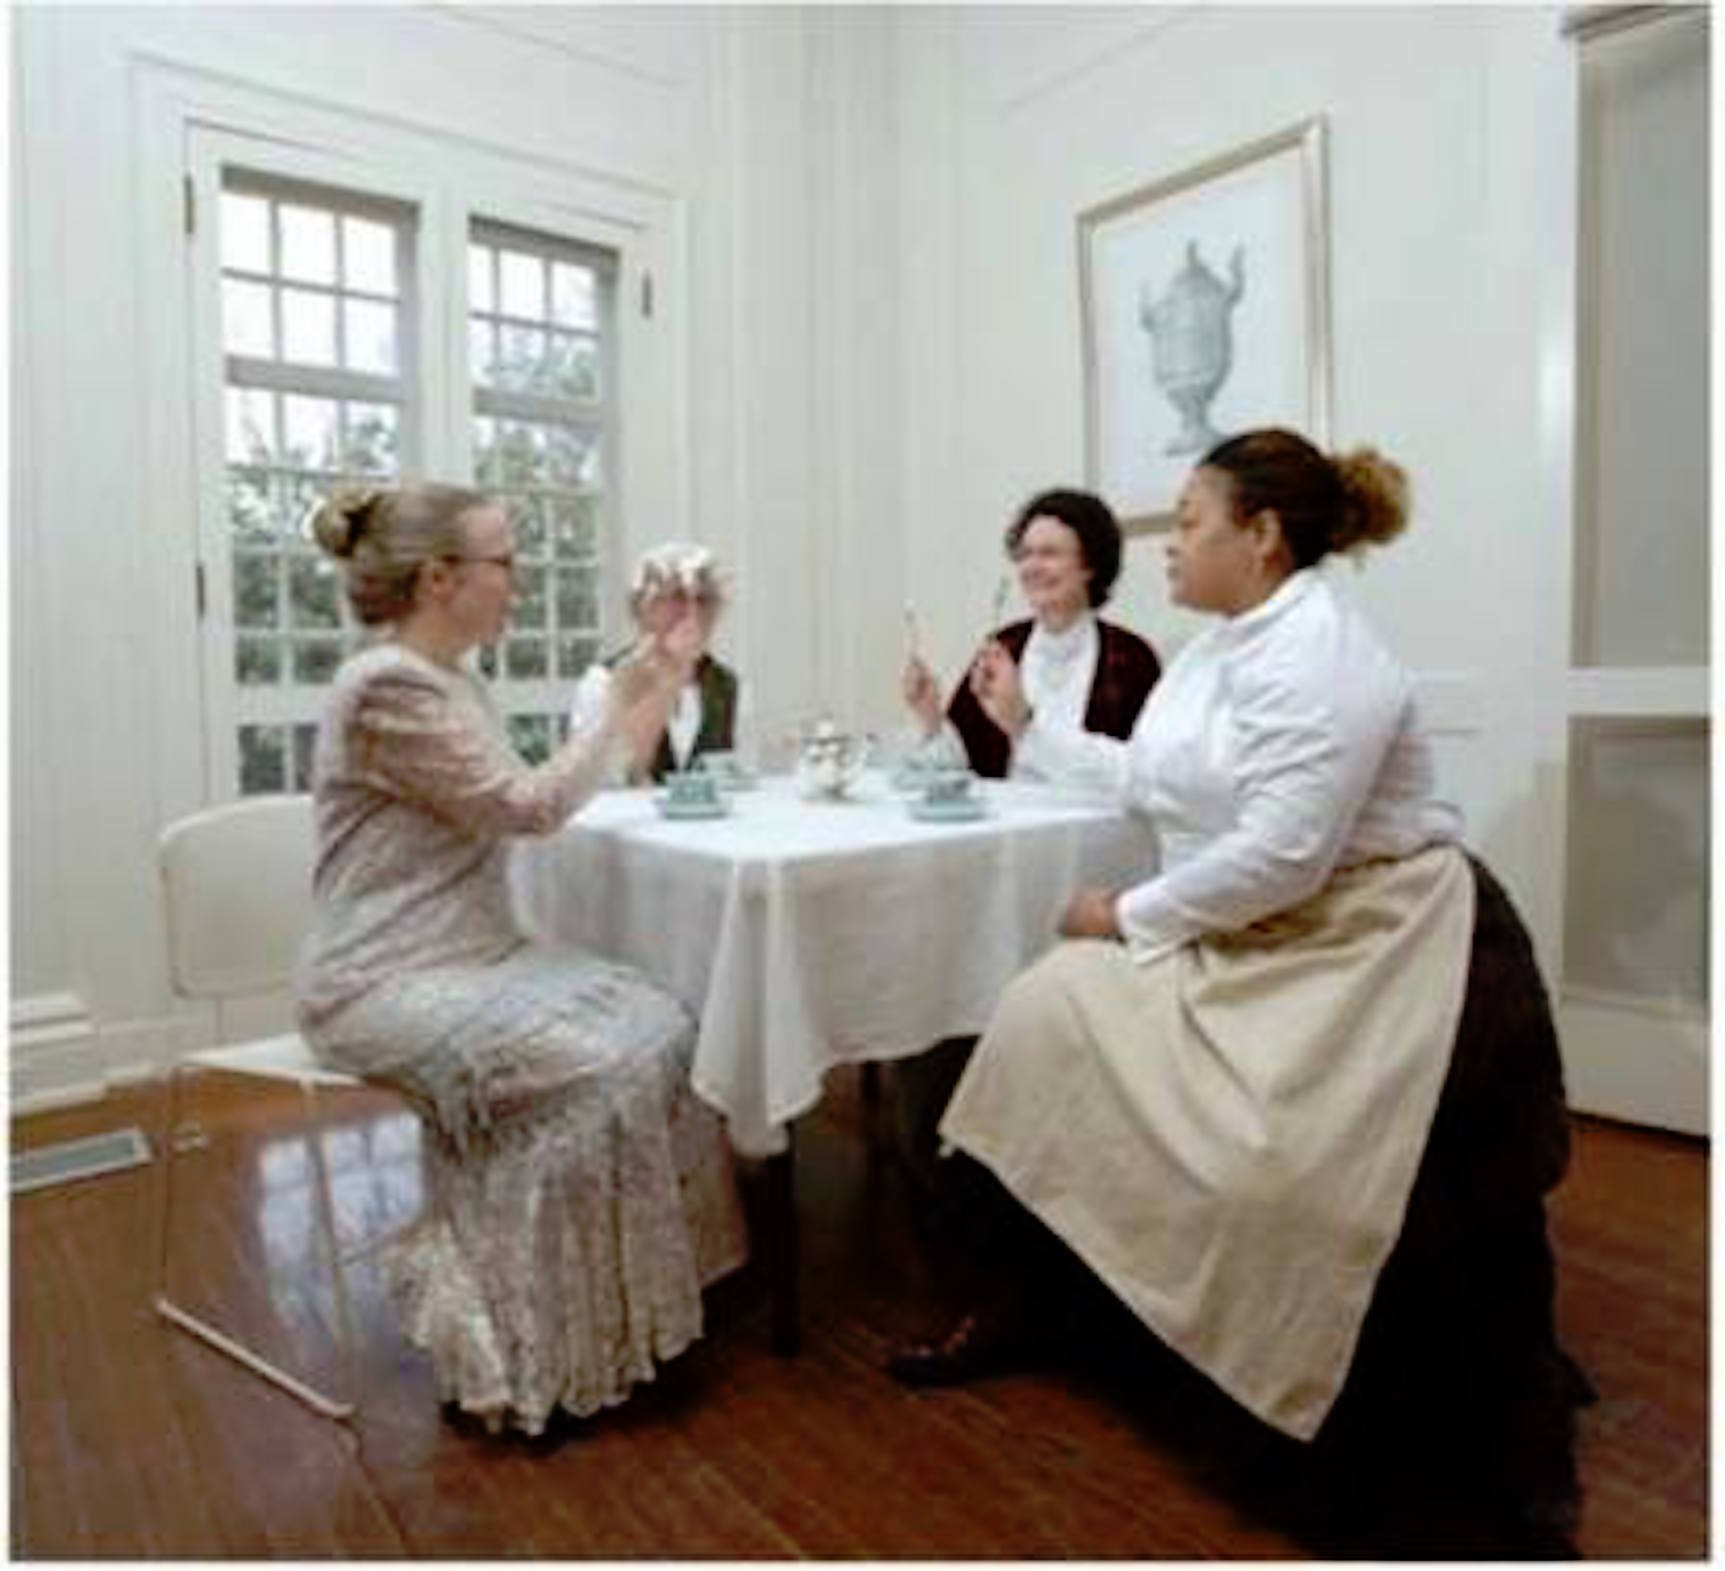 women in the shadows - keeler tavern museum 2014 - l to r Marybeth Bass, Sue Seiffer, Paula Curry, Dawn Berenson